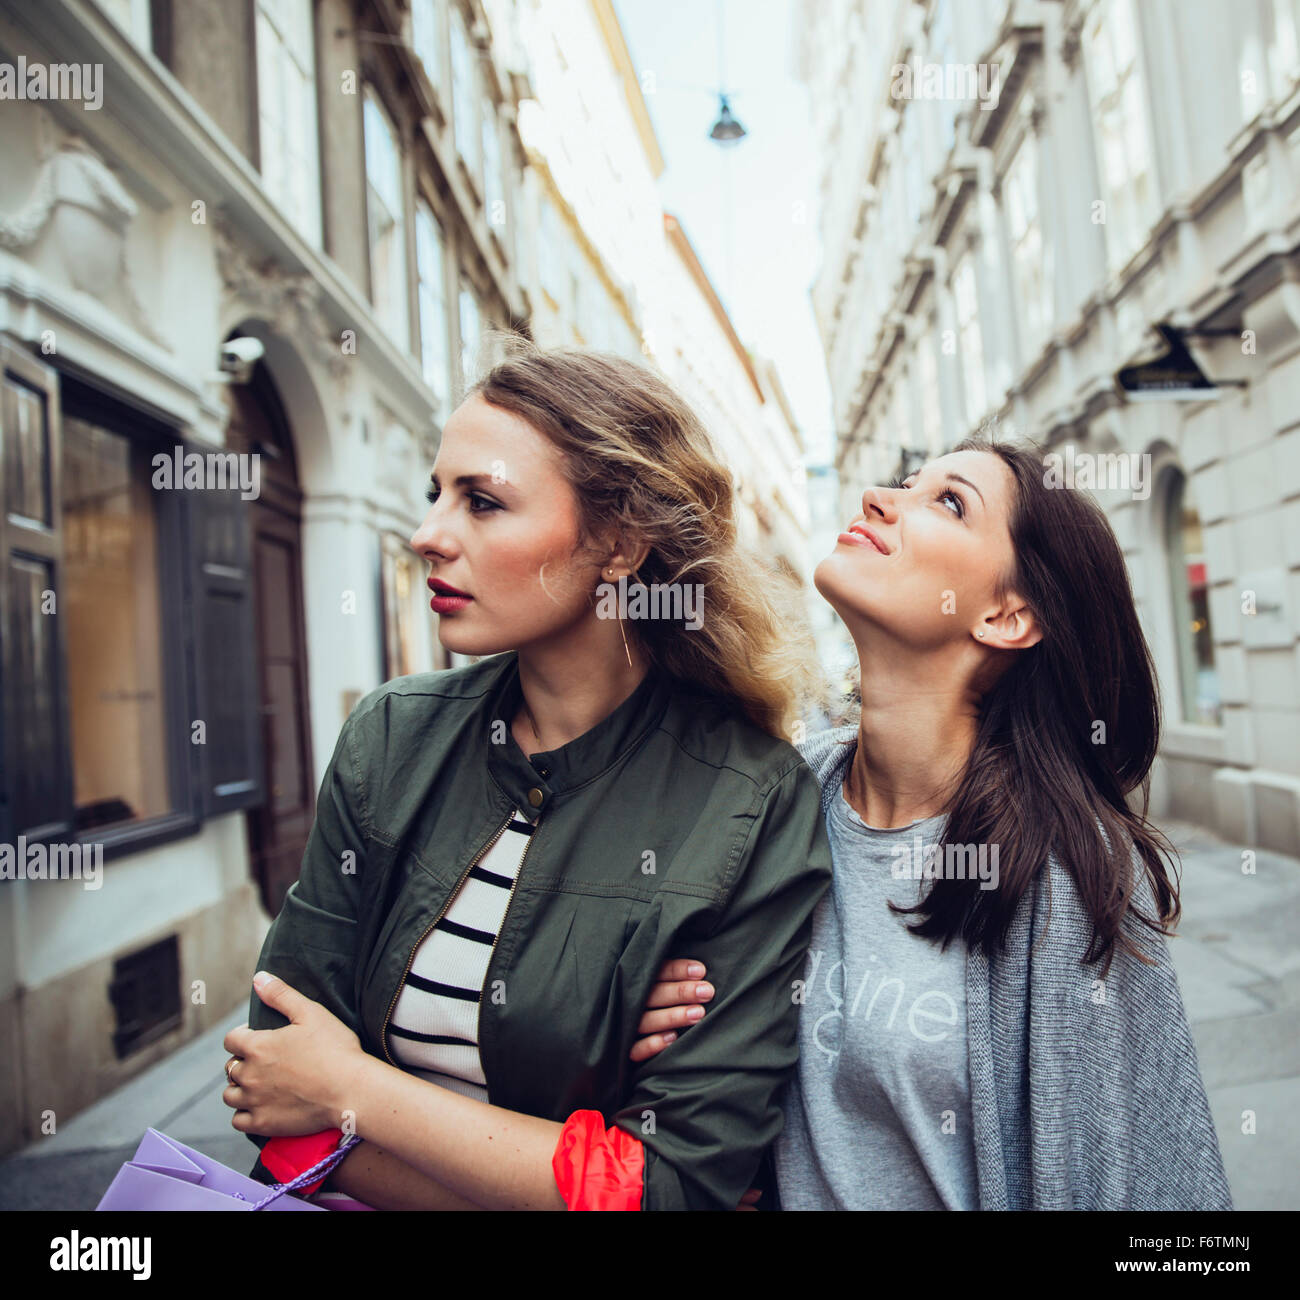 Austria, Vienna, two young women exploring the old town - Stock Image